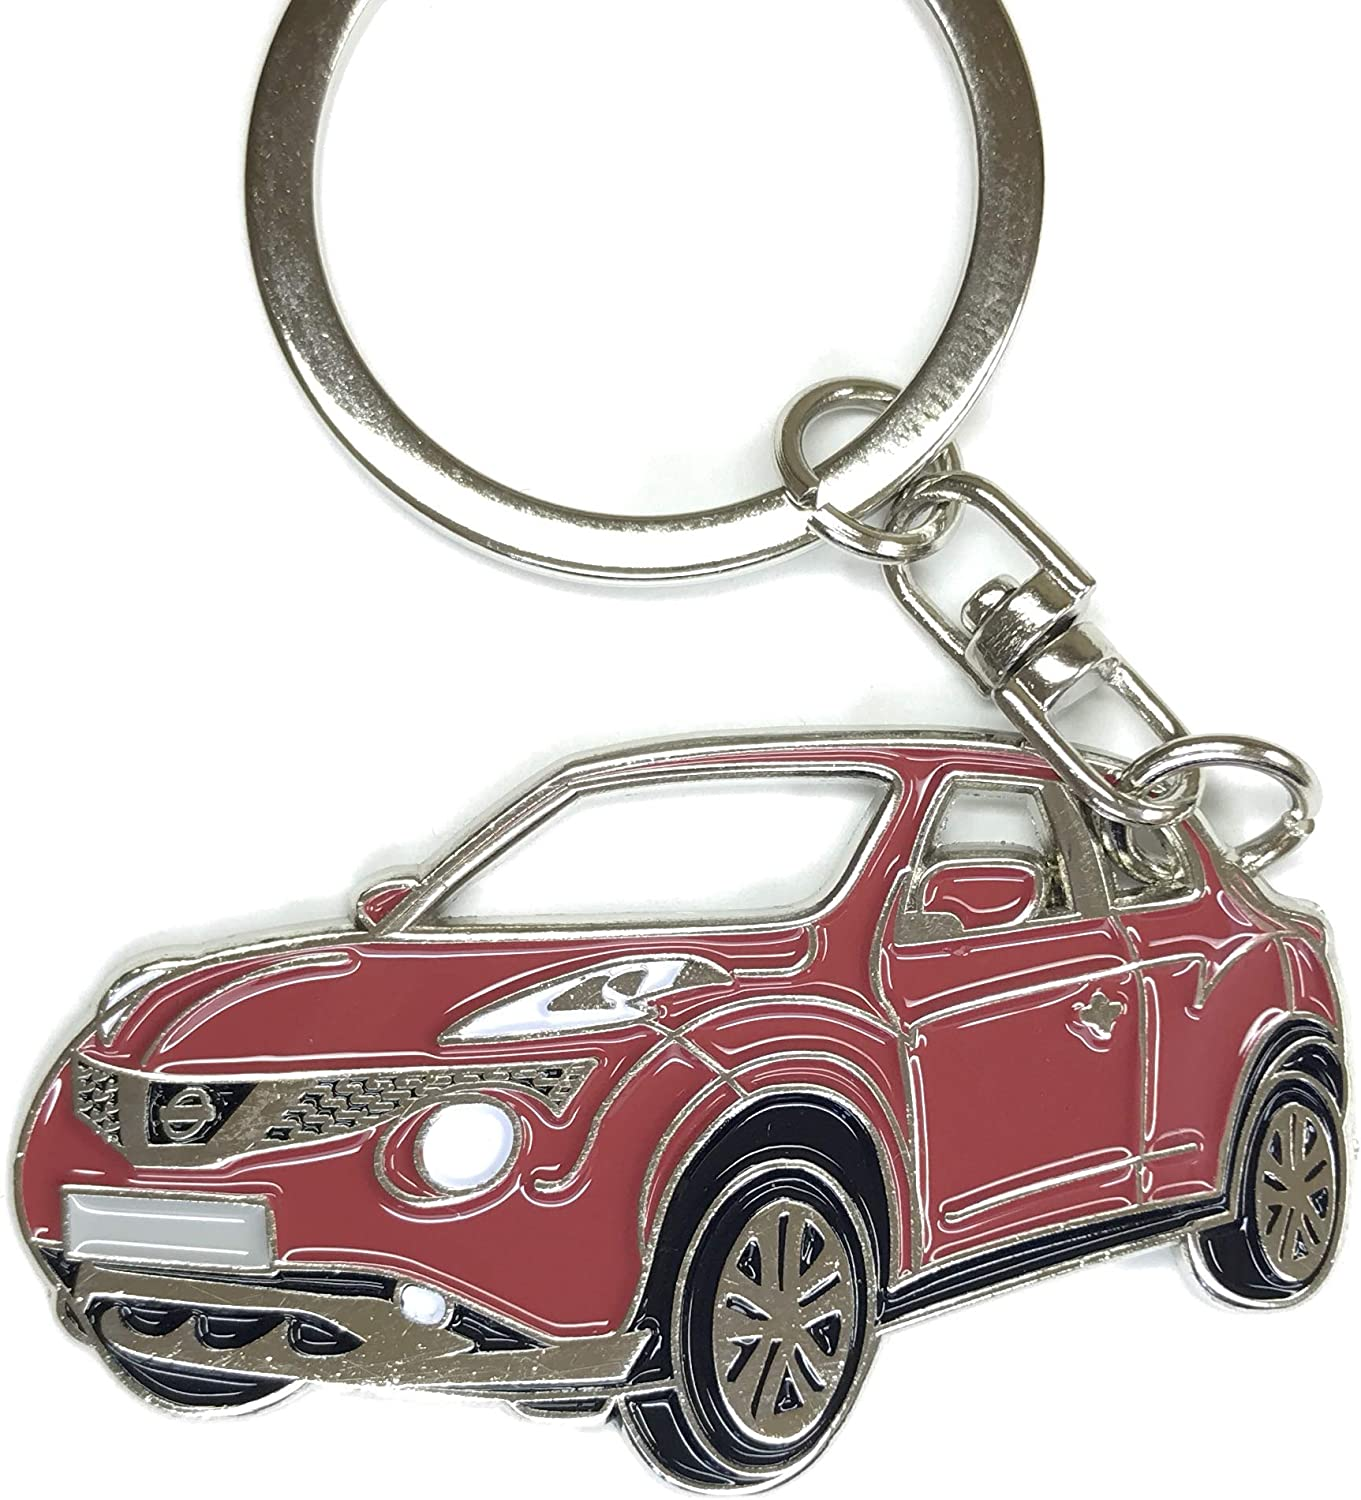 red Chrome Metal tag Enamel 3dcrafter Juke Key Chain for car Accessories Replica.